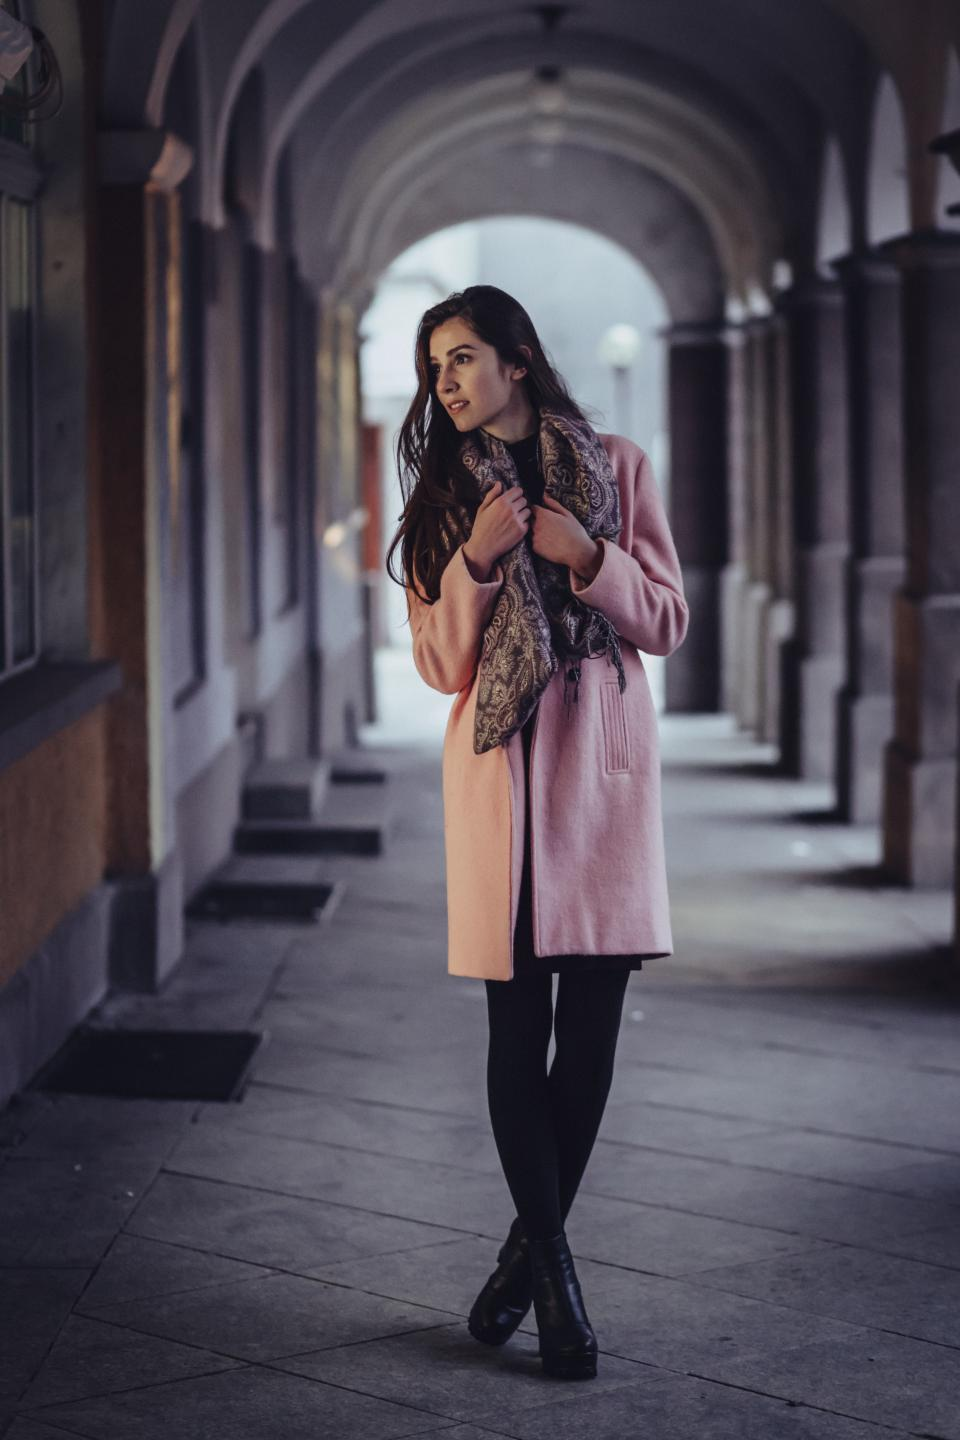 people woman beauty cold weather coat fashion photography photoshoot scarf hallway architecture pillar building establishment